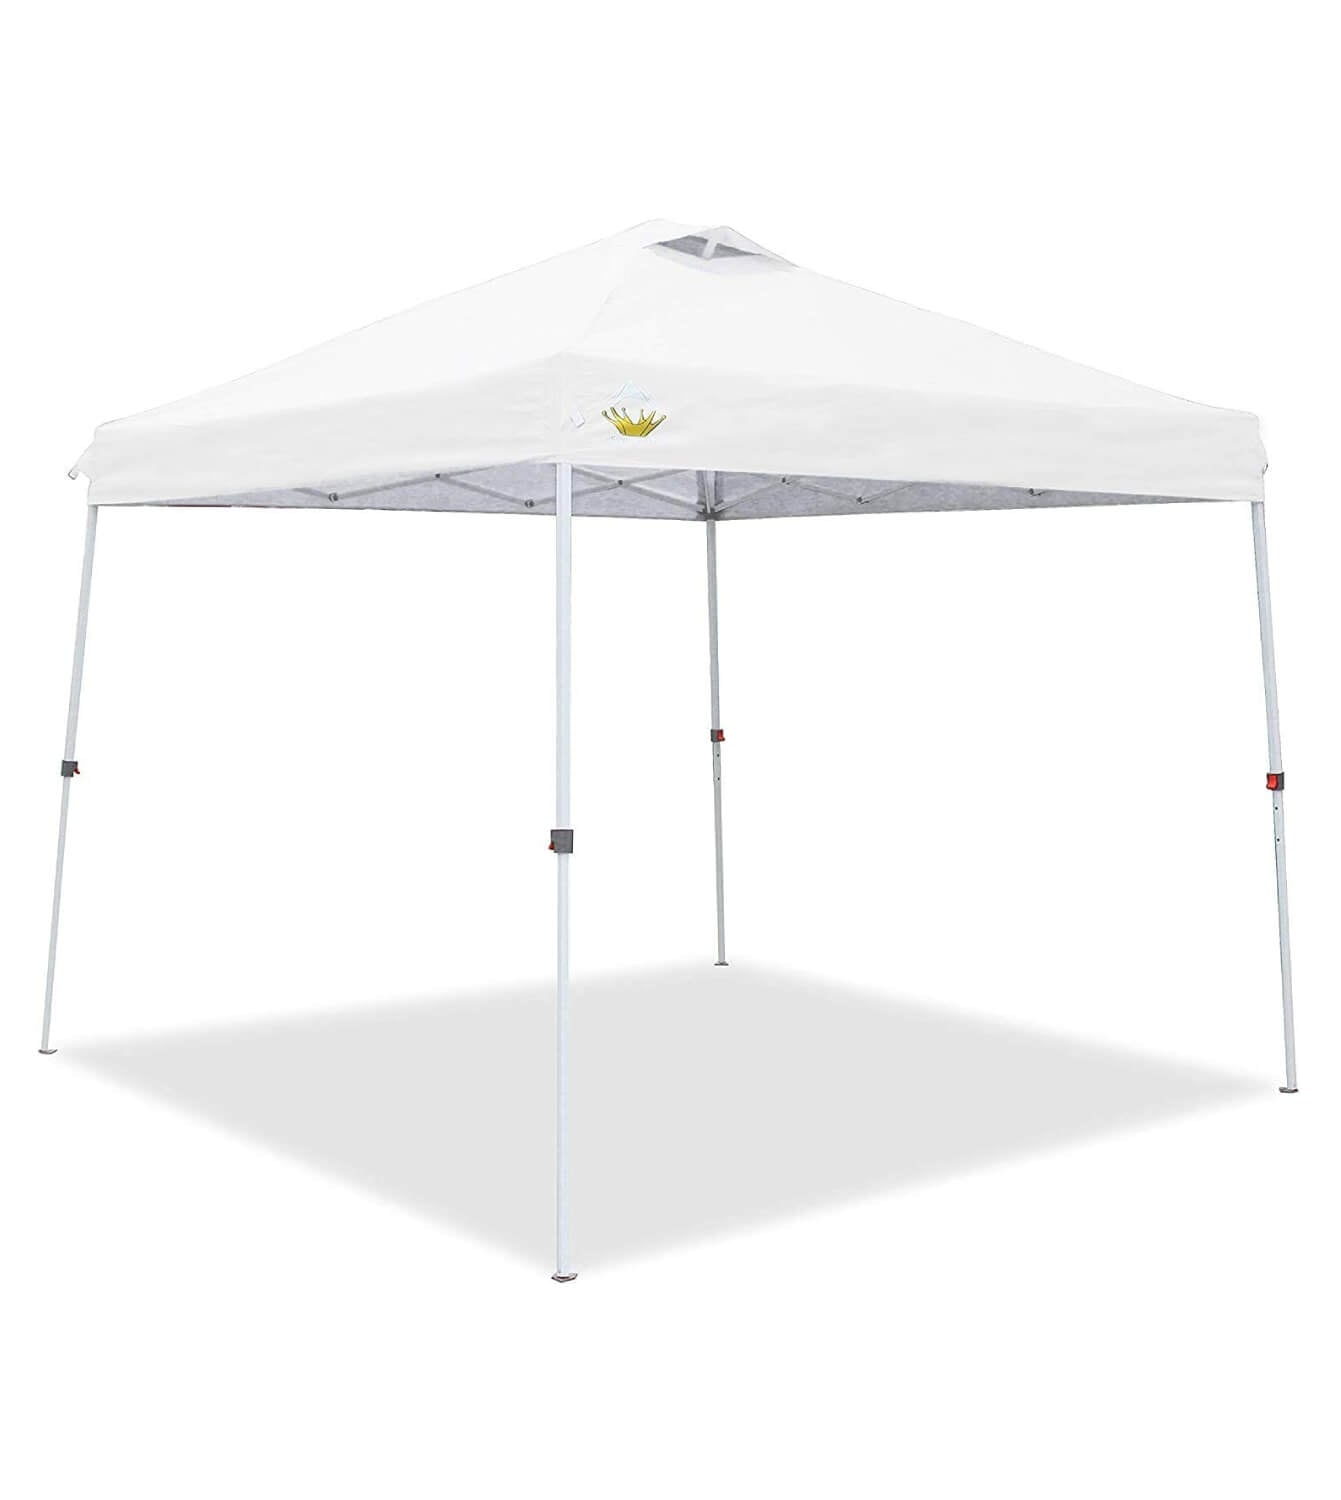 CROWN SHADES Instant Folding Canopy